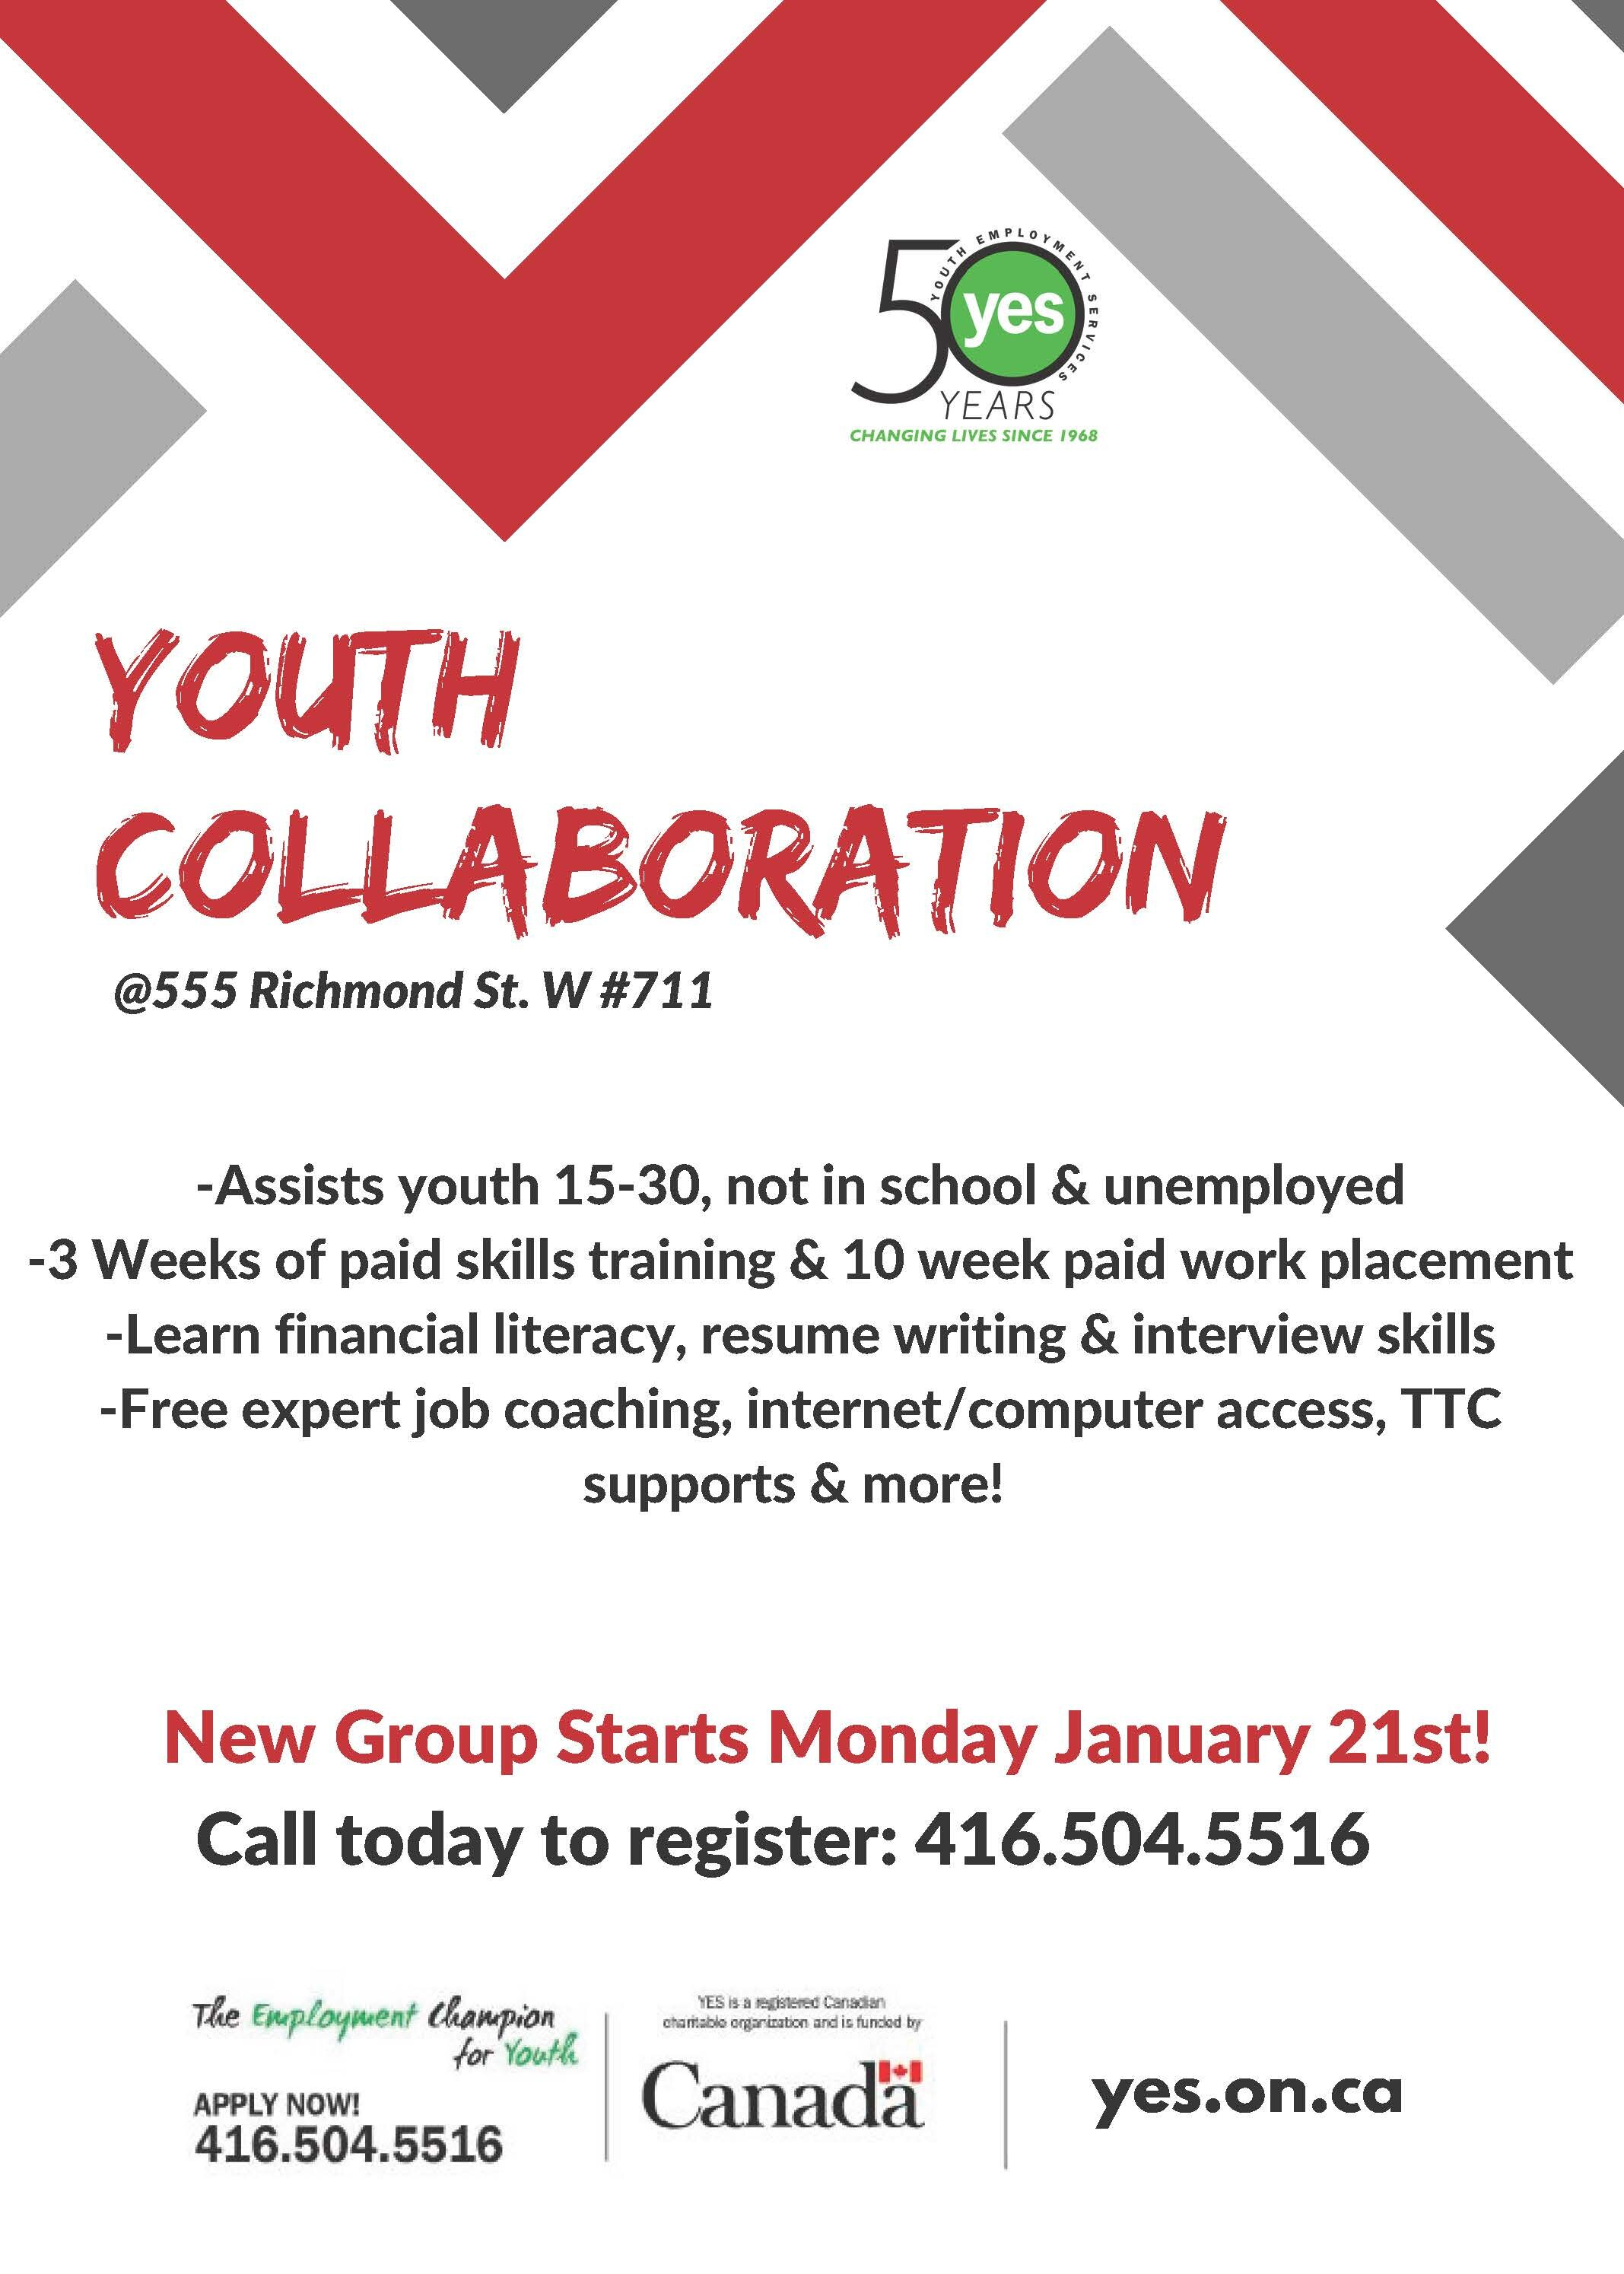 Youth Collaboration